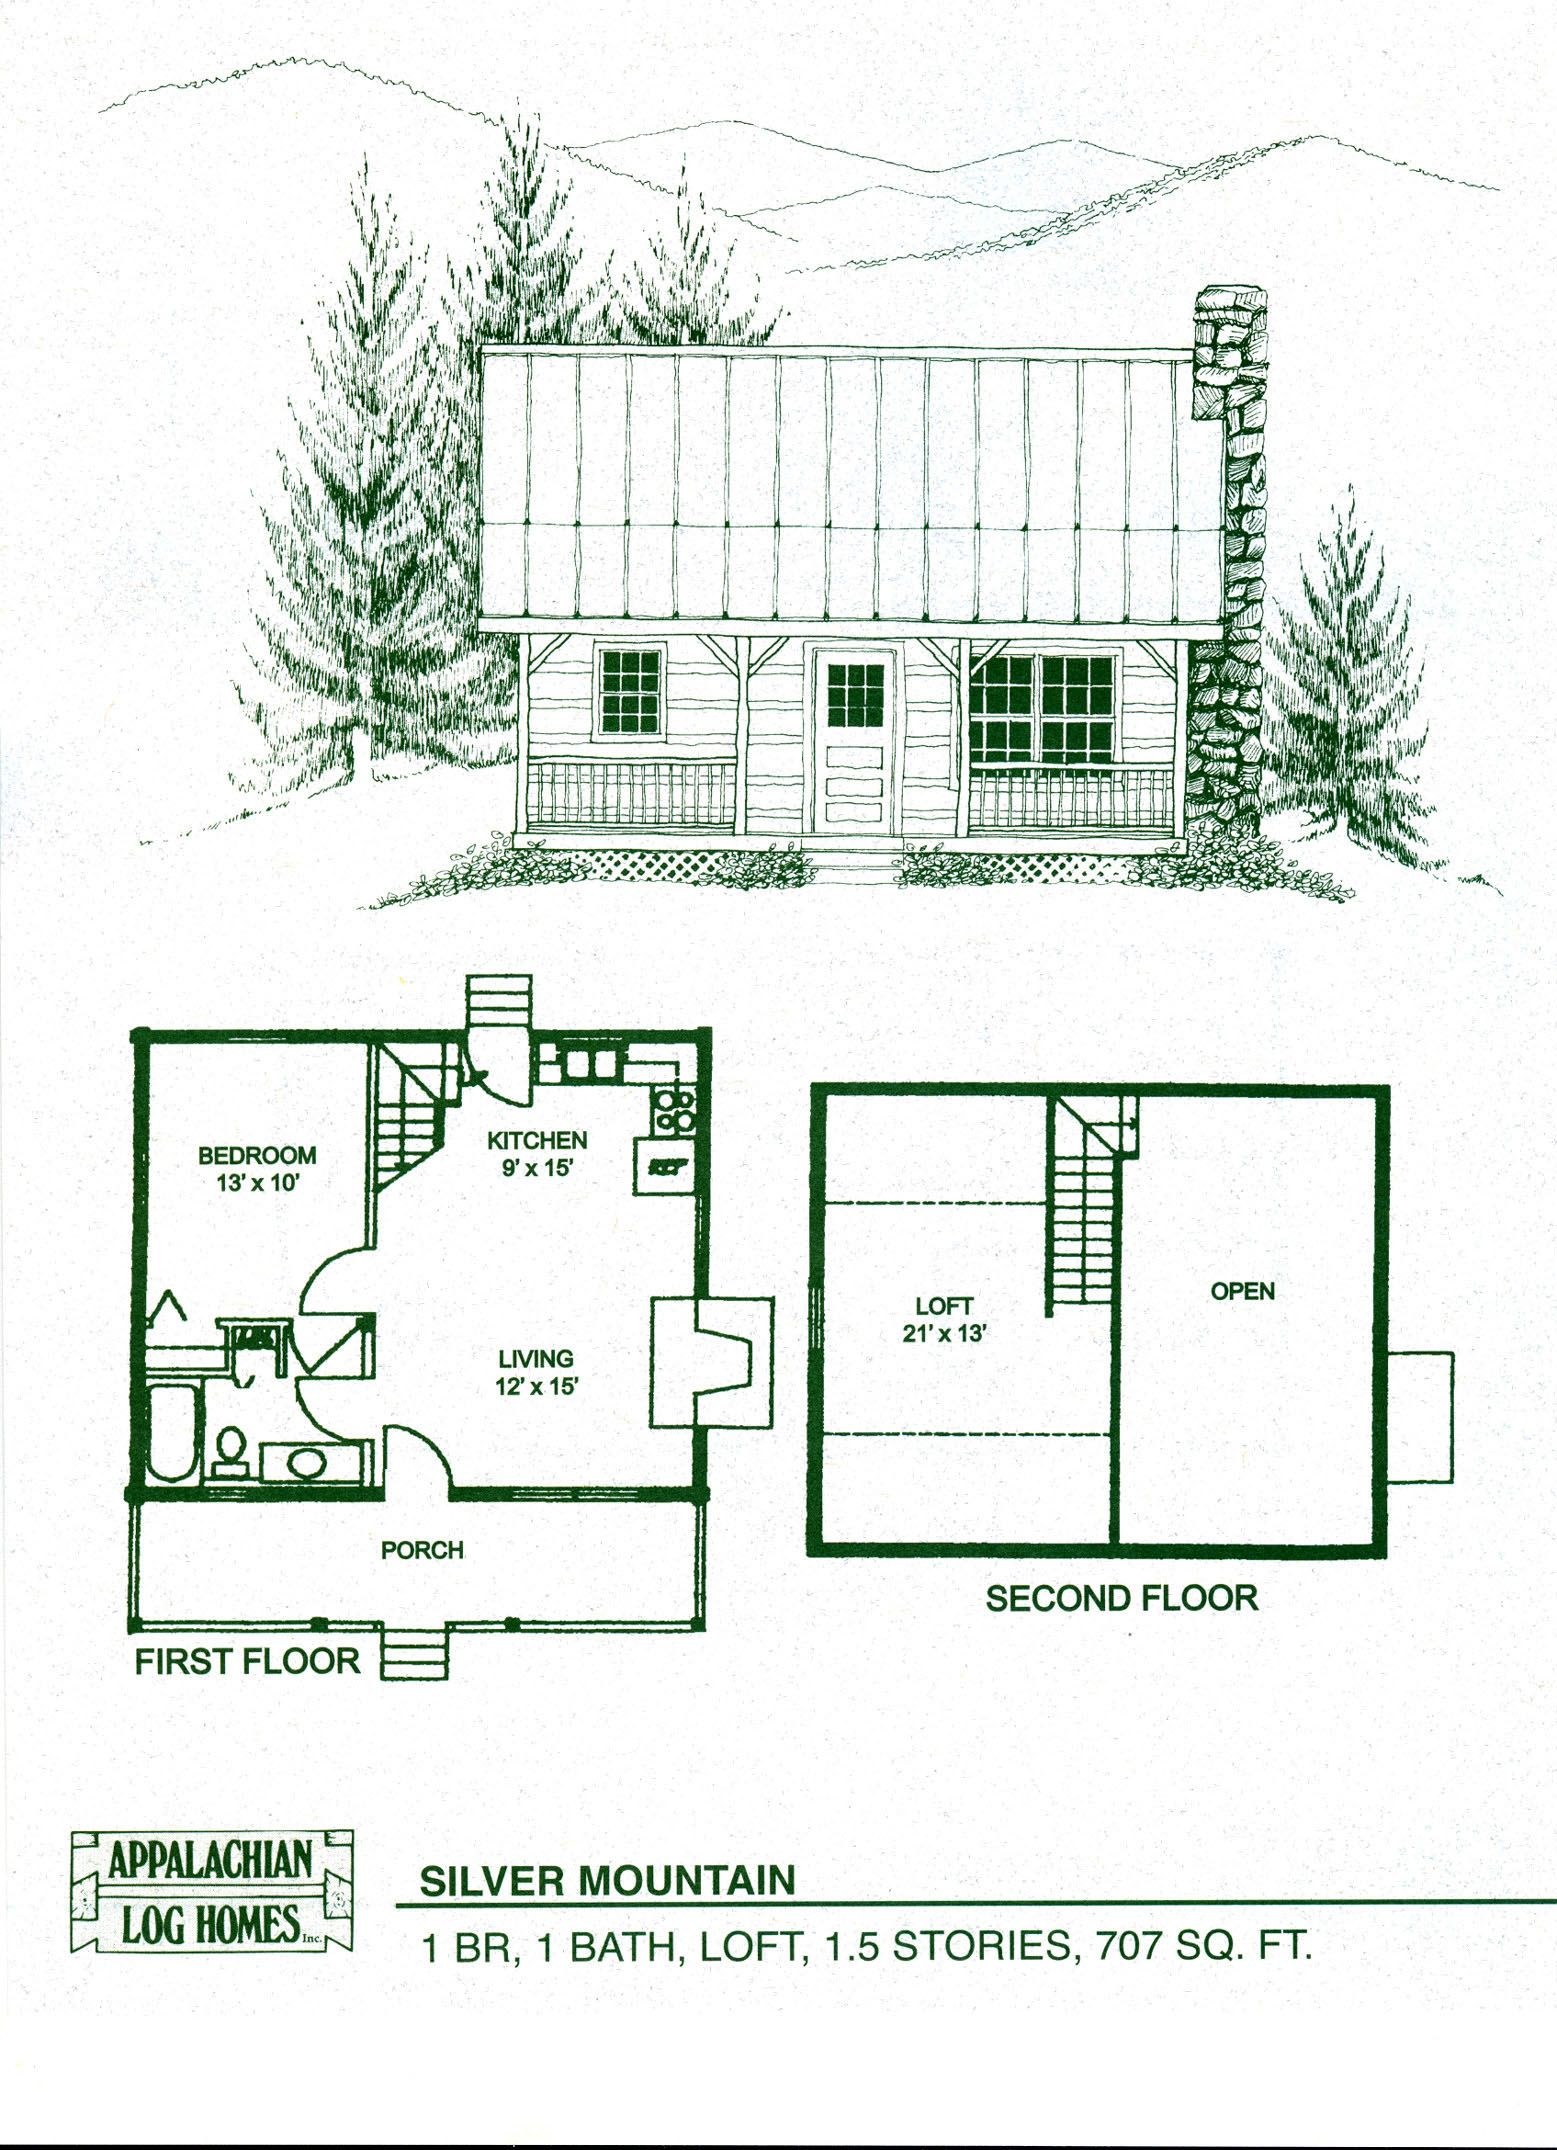 Log Cabin Home Plans Designs.  Cabin Plans Small House Floor Log Simple With Loft Lrg simple small house floor plans with loft lrg cabin The Silver Mountain offers a cottage feel for the weekend getaway